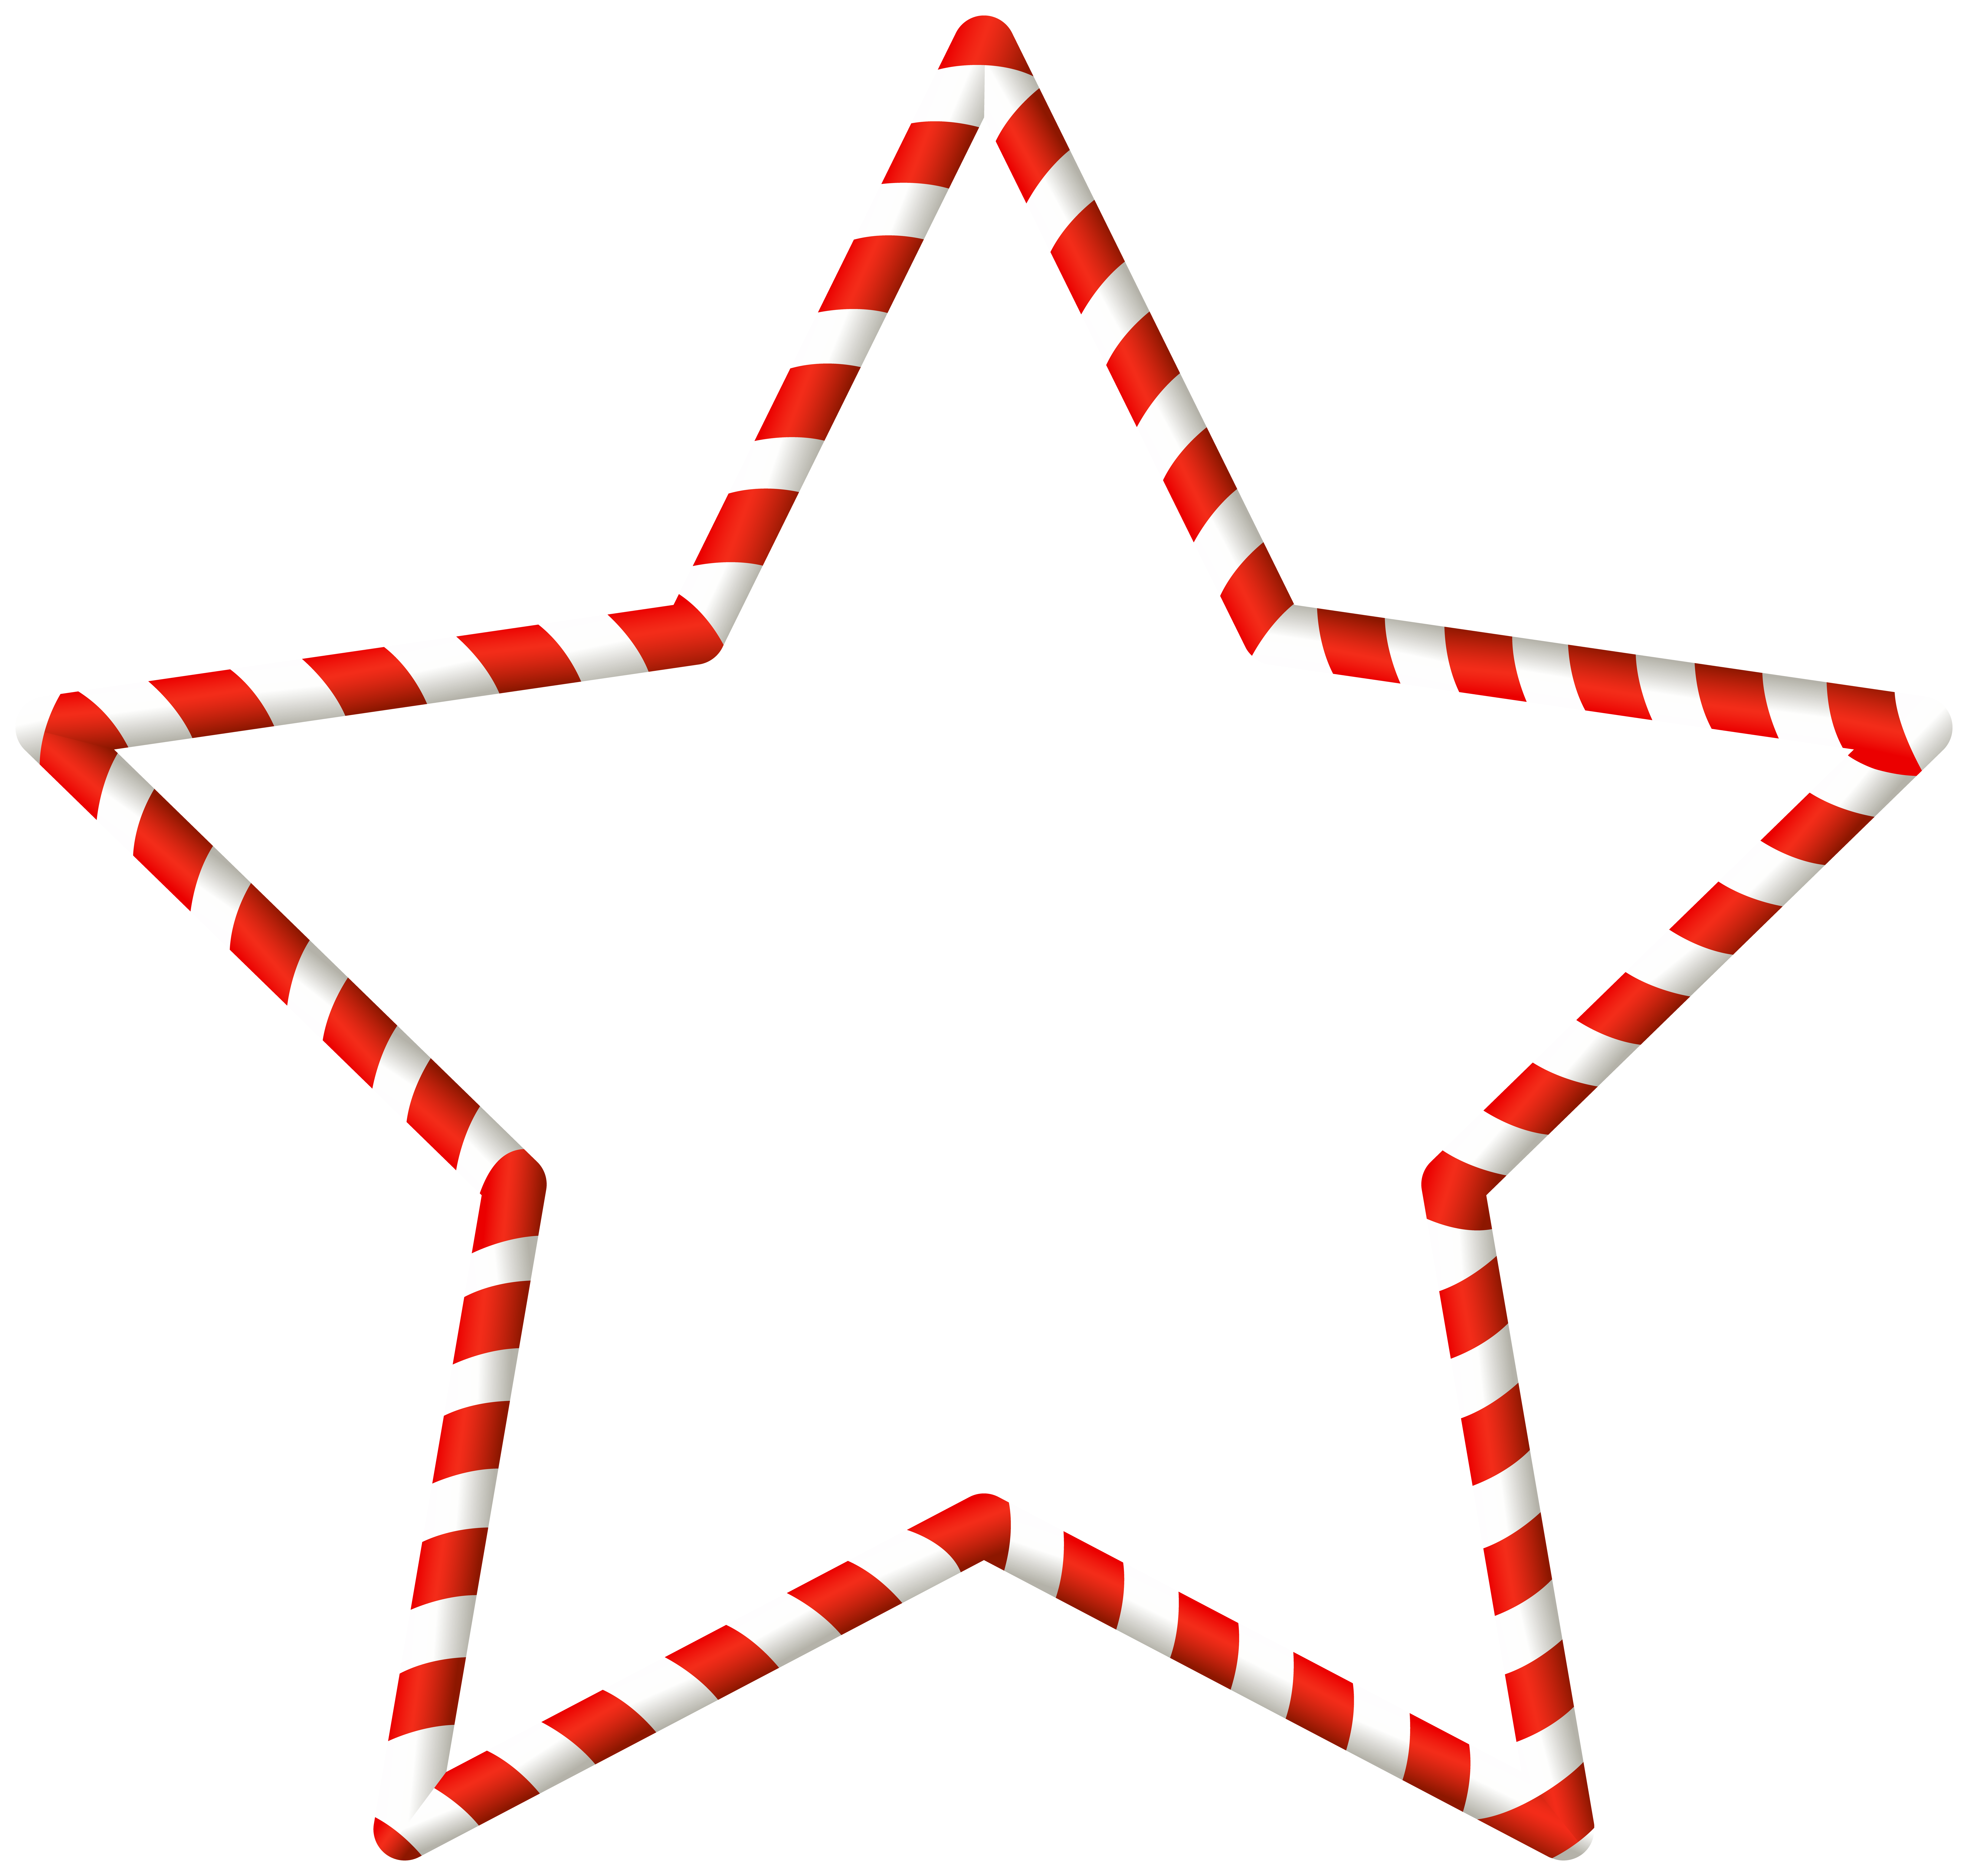 Christmas Candy Cane Star Border Clip Art Image.